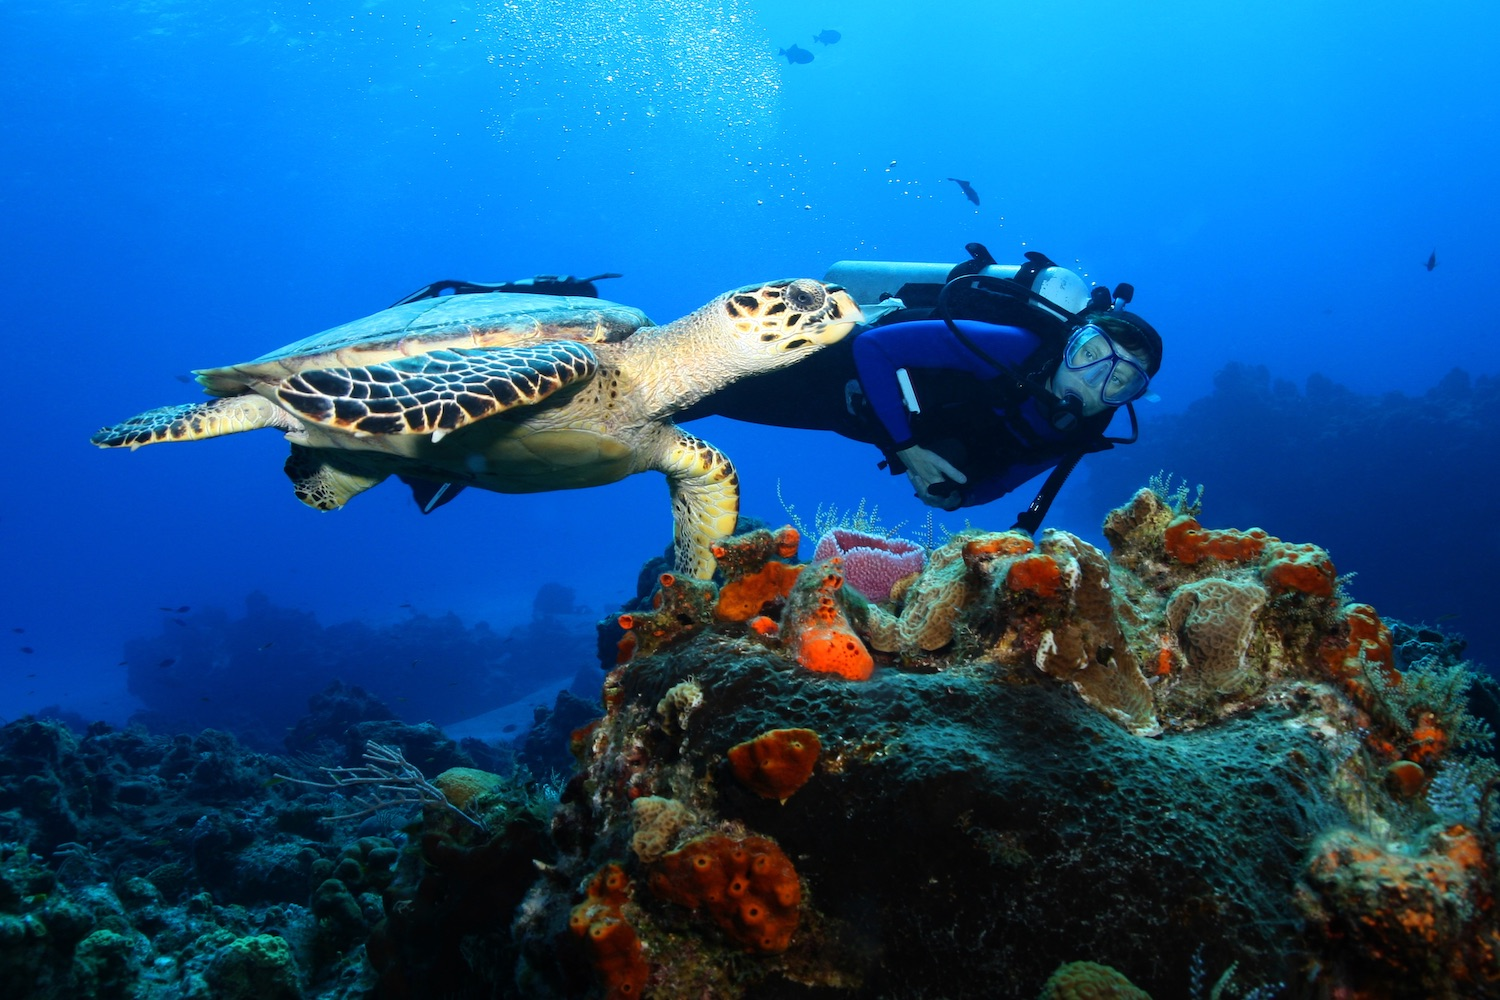 Dive into the Indian Ocean and discover all activities we offer.